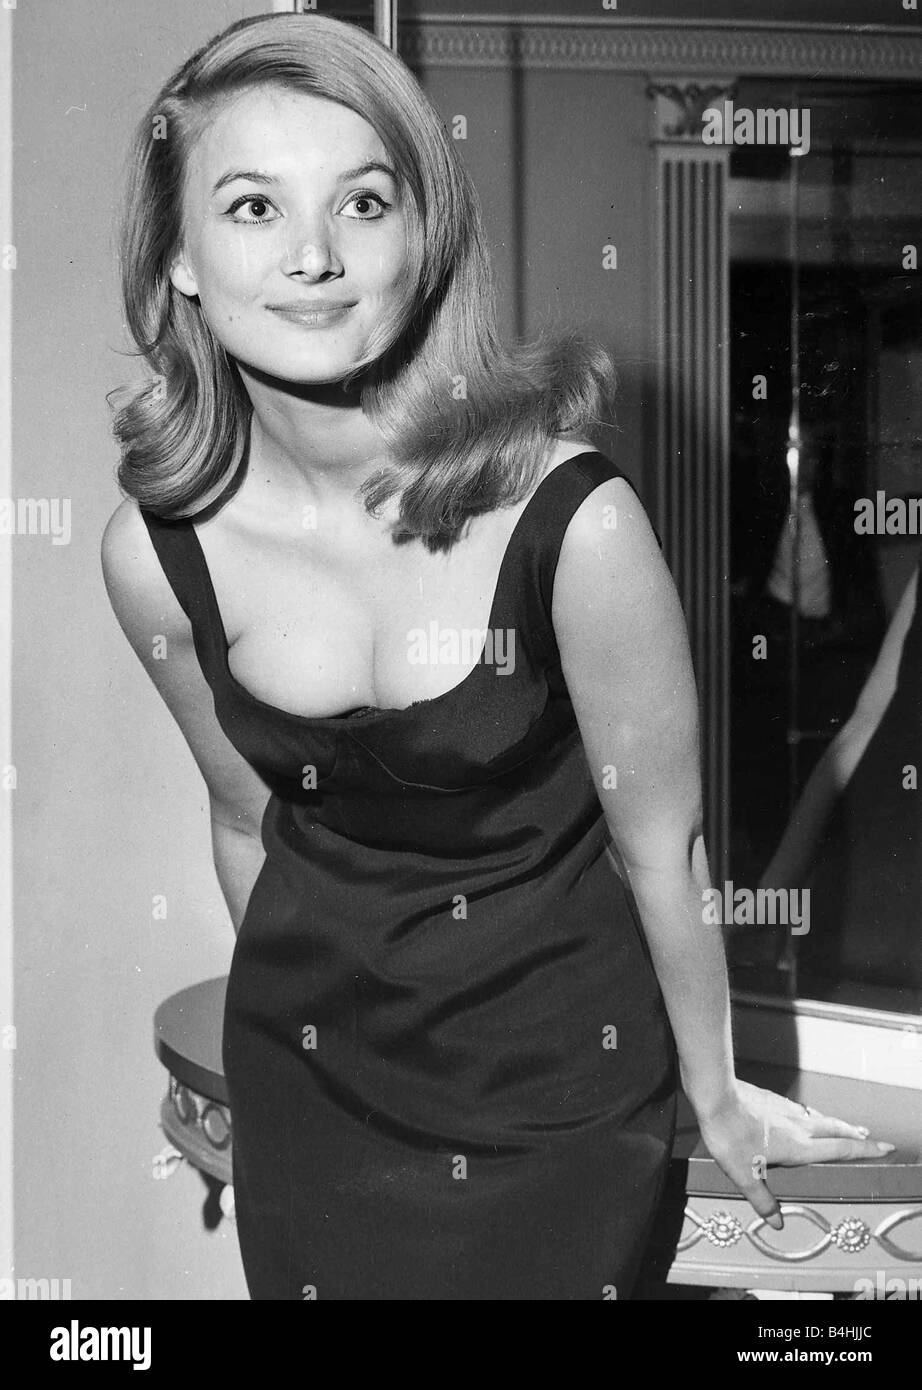 barbara bouchet - photo #26